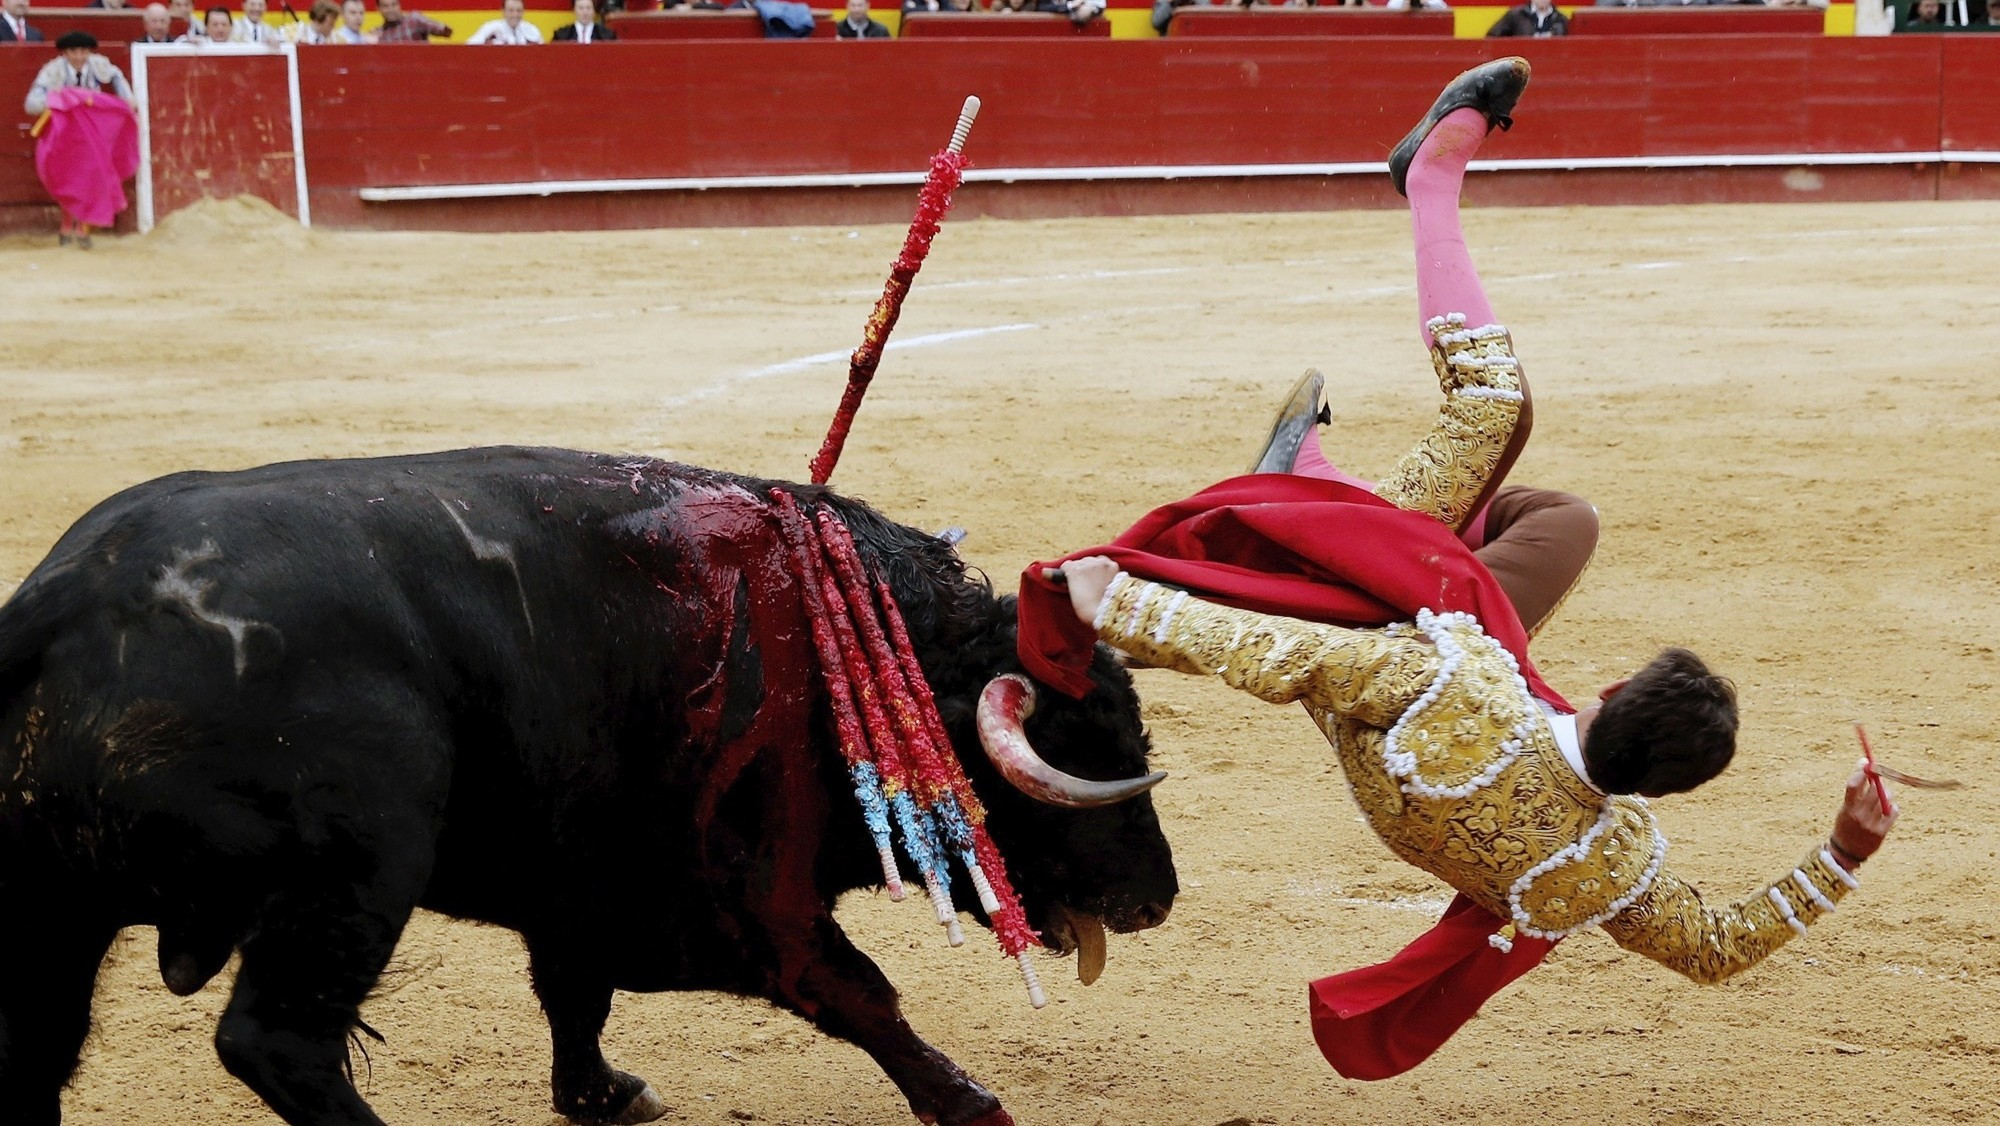 an overview of the practice of bullfighting as a sport Bullfighting is a traditional spectacle of spain, portugal, southern france and some latin american countries (mexico, colombia, venezuela, peru and ecuador), in which one or more bulls are baited and usually killed by a matador in a bullring for sport and entertainment.